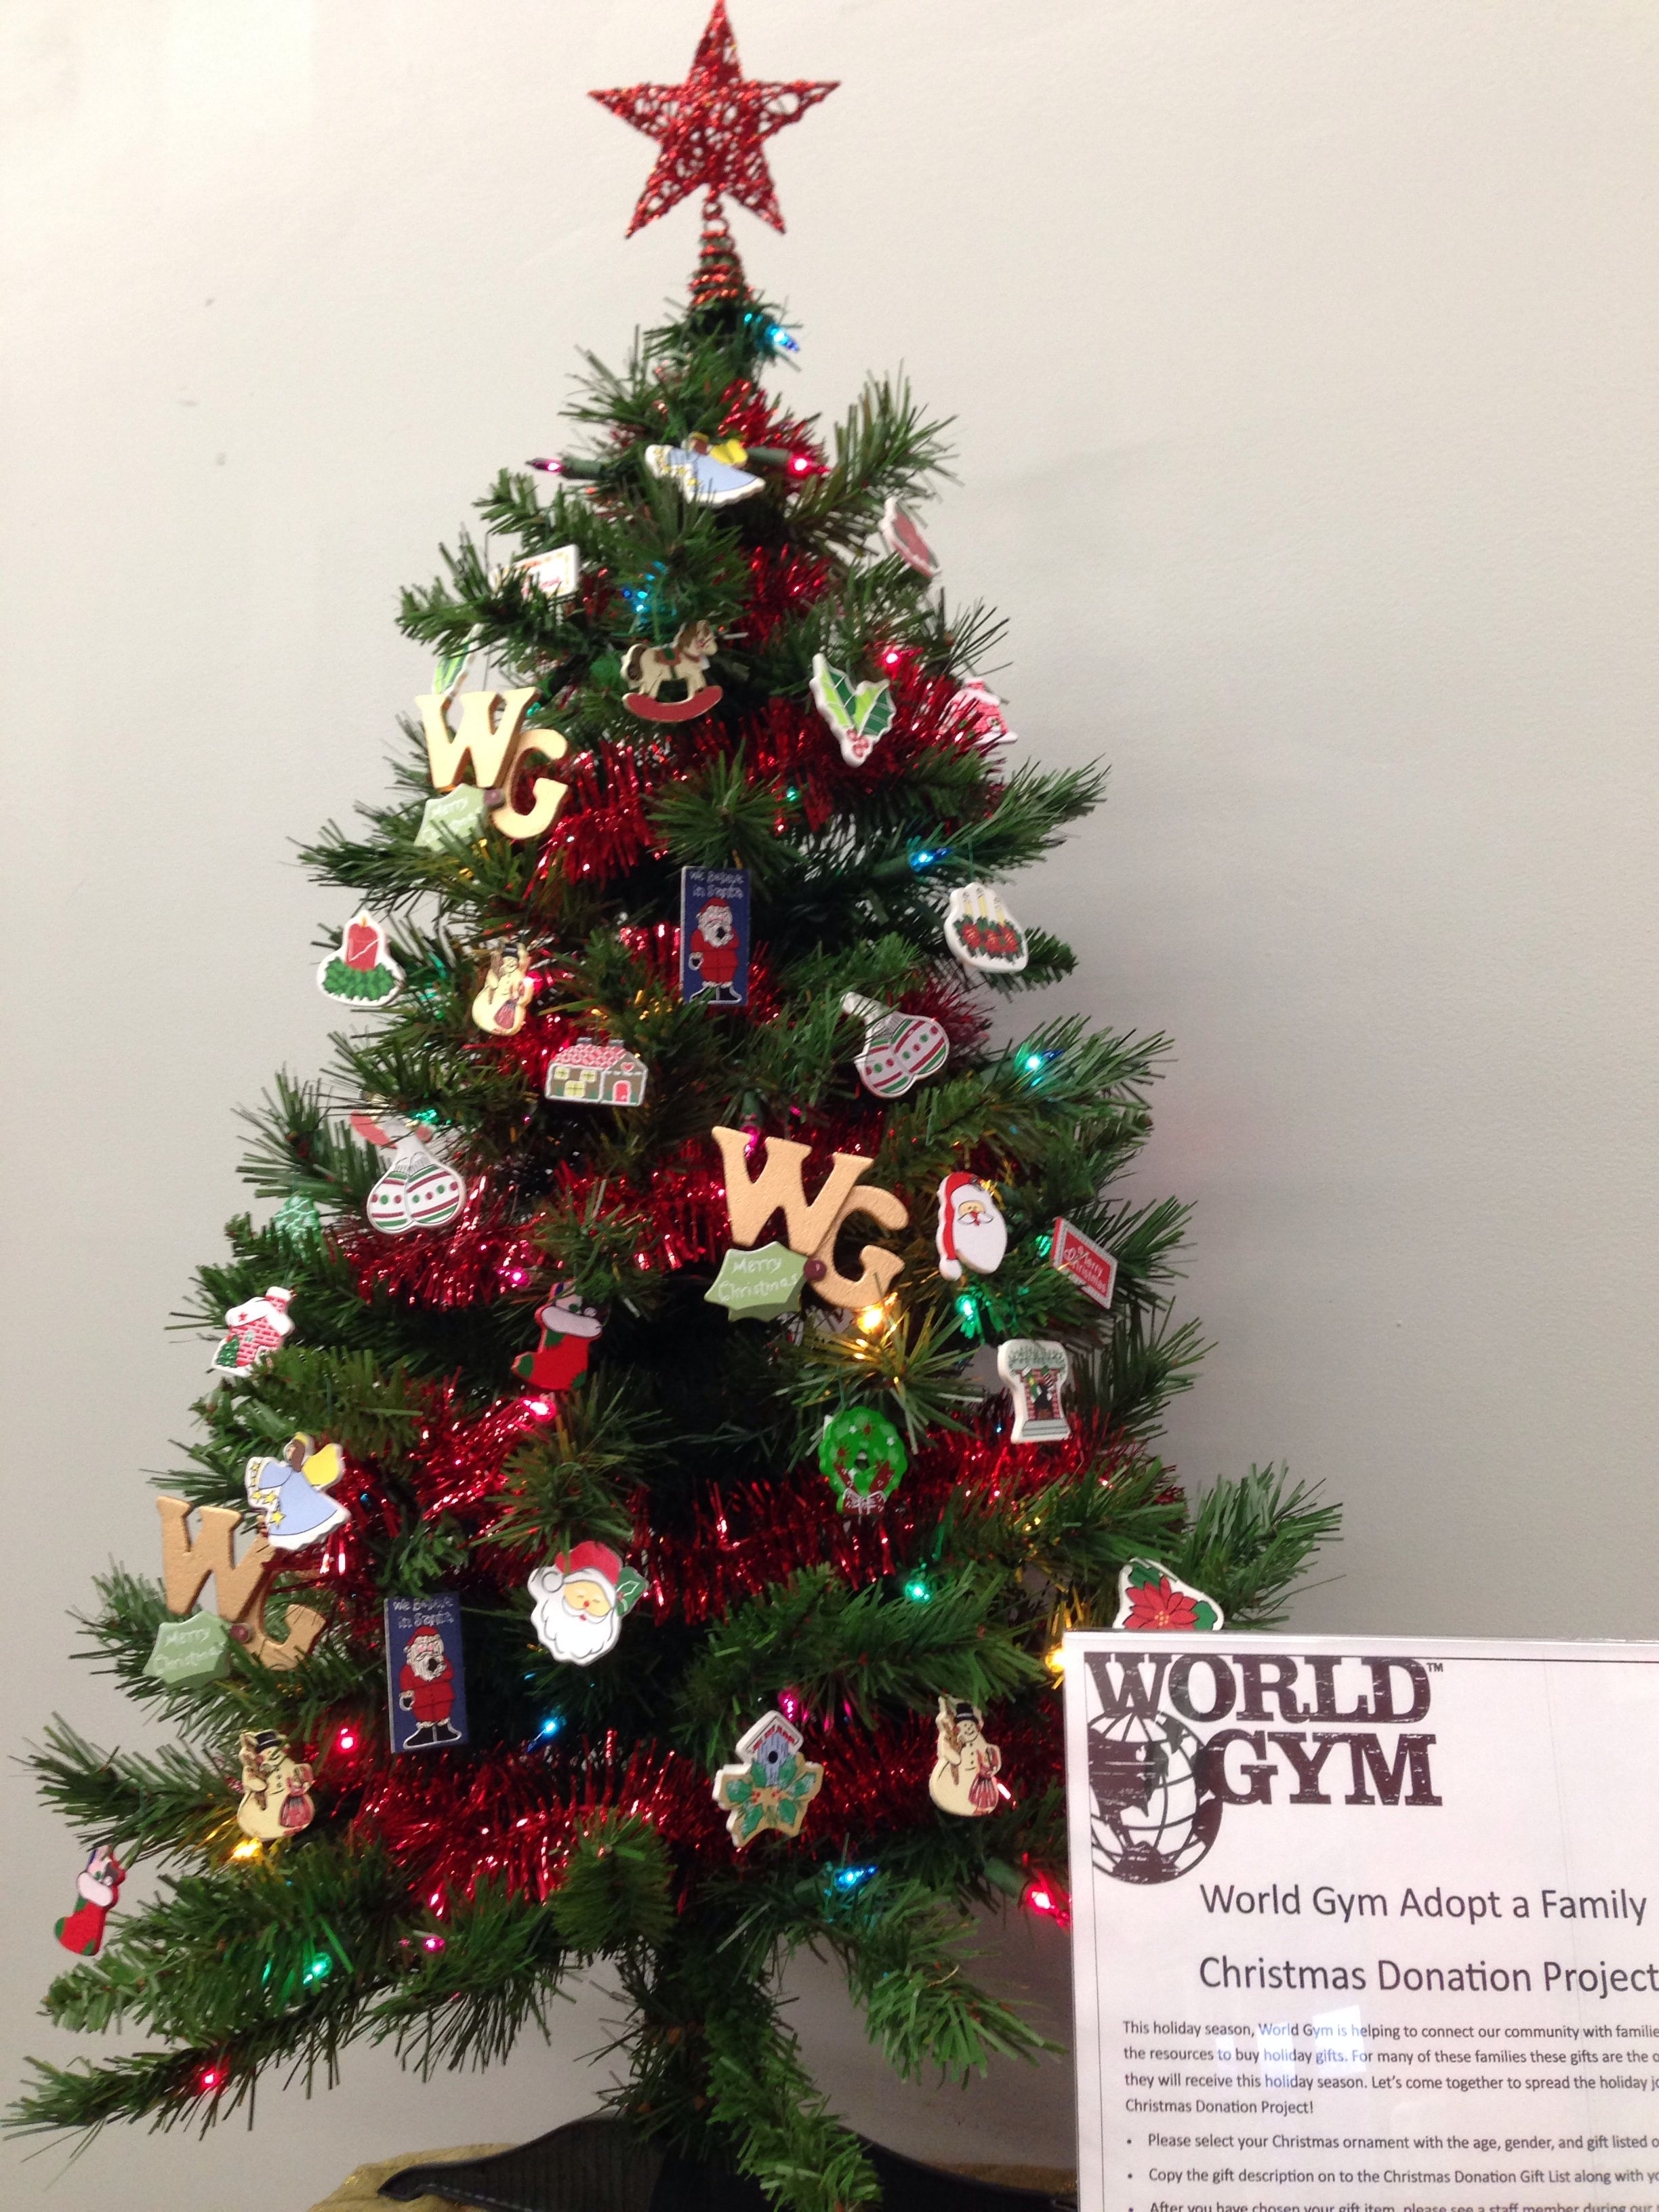 Our World Gym Christmas Donation Projects Give Back To Those In Need This Holiday Season Christmas Holiday Season Holiday Decor